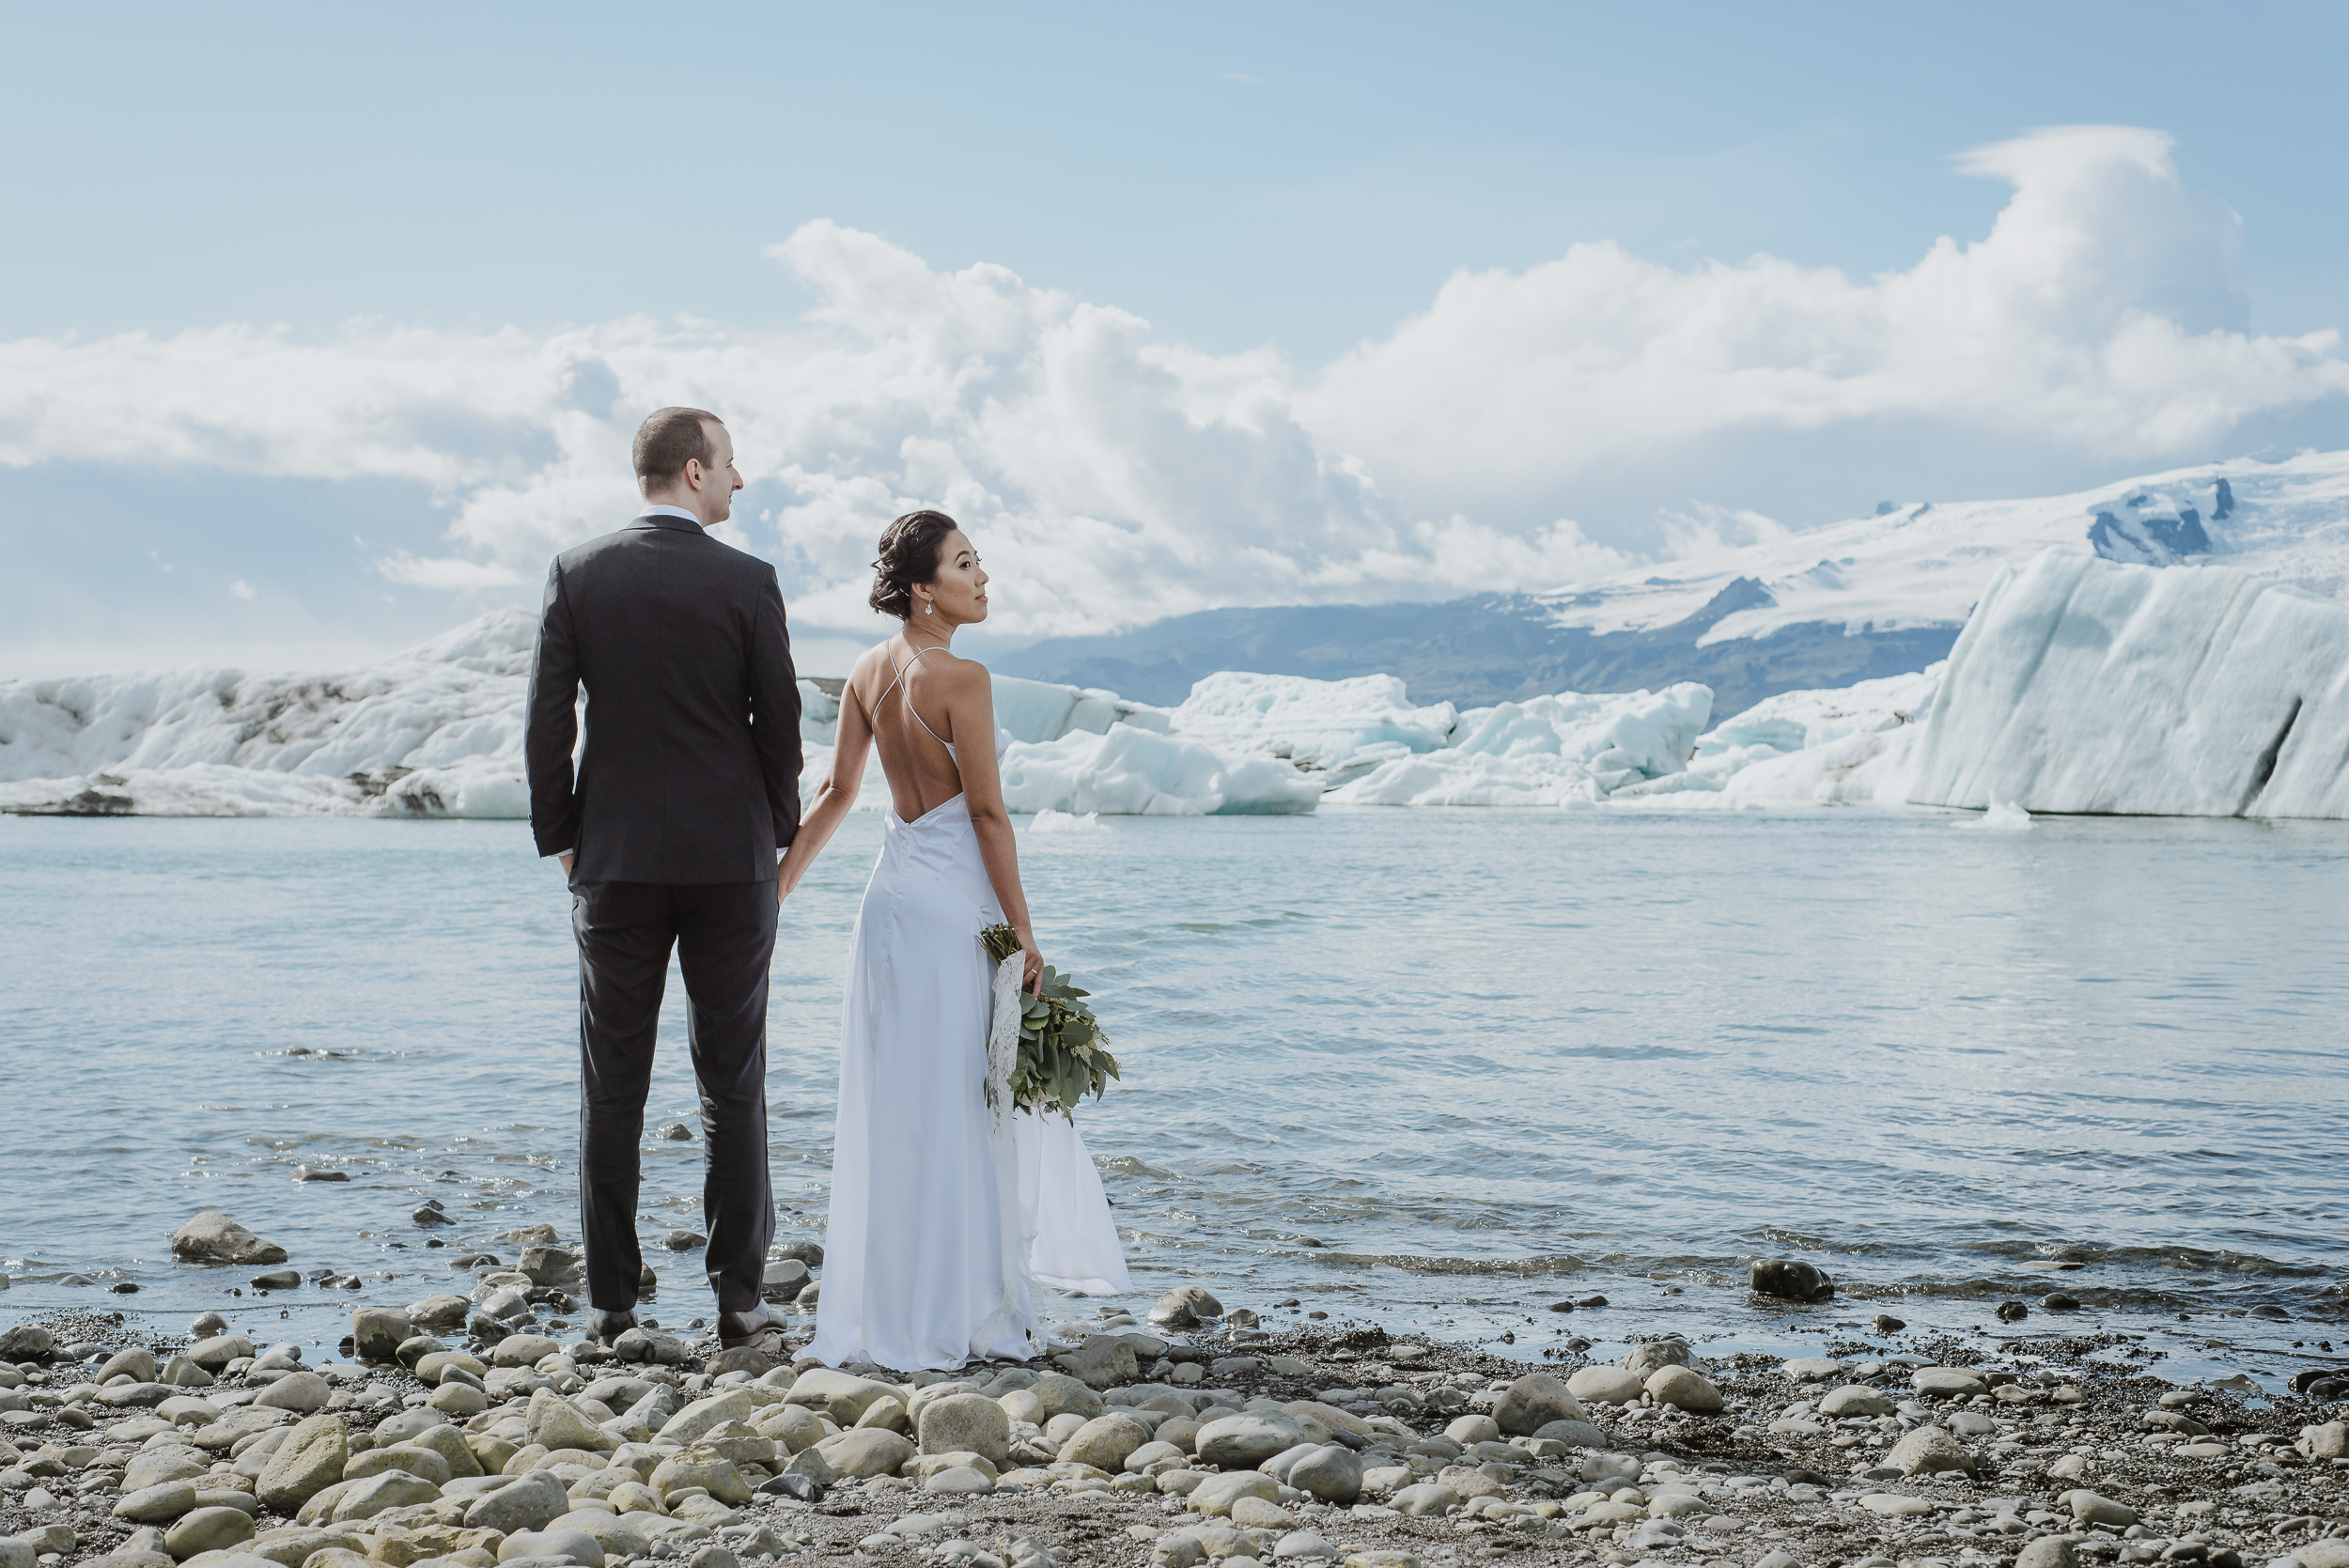 03-destination-wedding-iceland-engagement-session-vivianchen-084.jpg